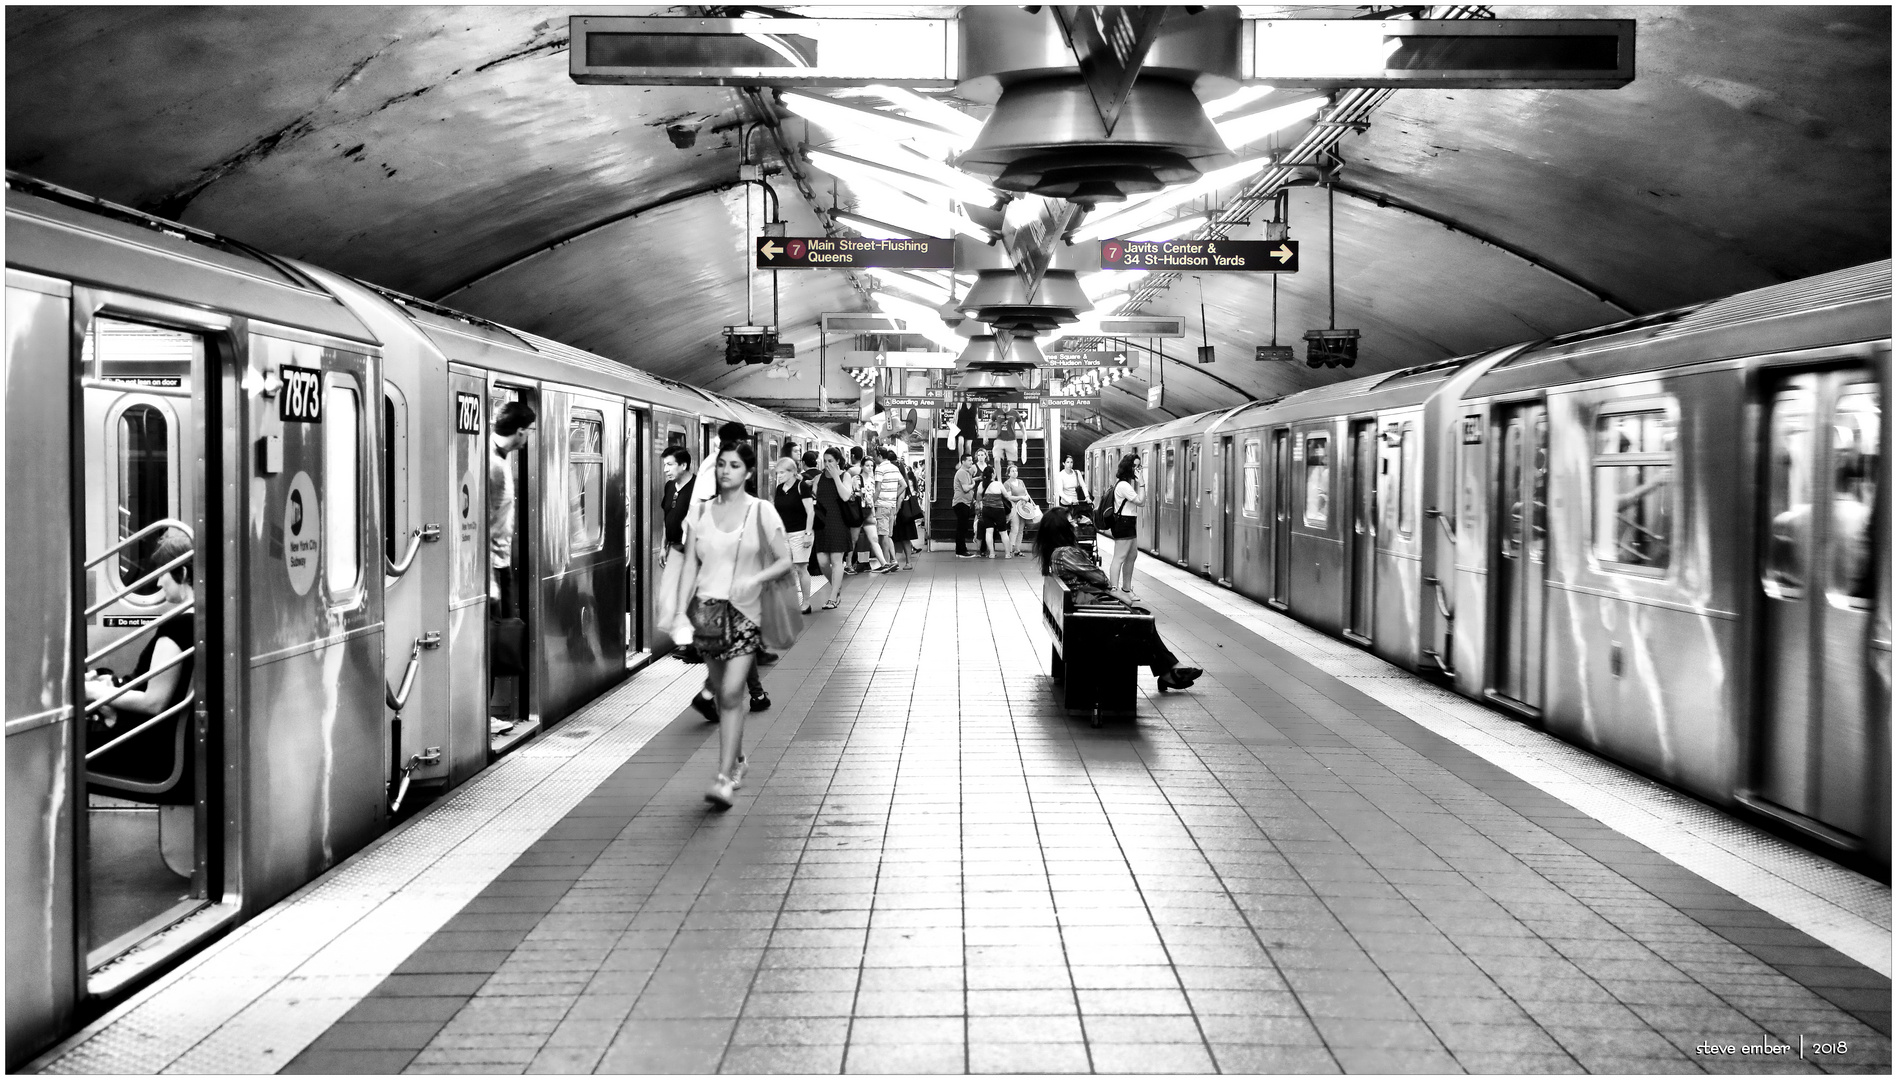 7Scape No.13 - Boarding + Departing under GCT